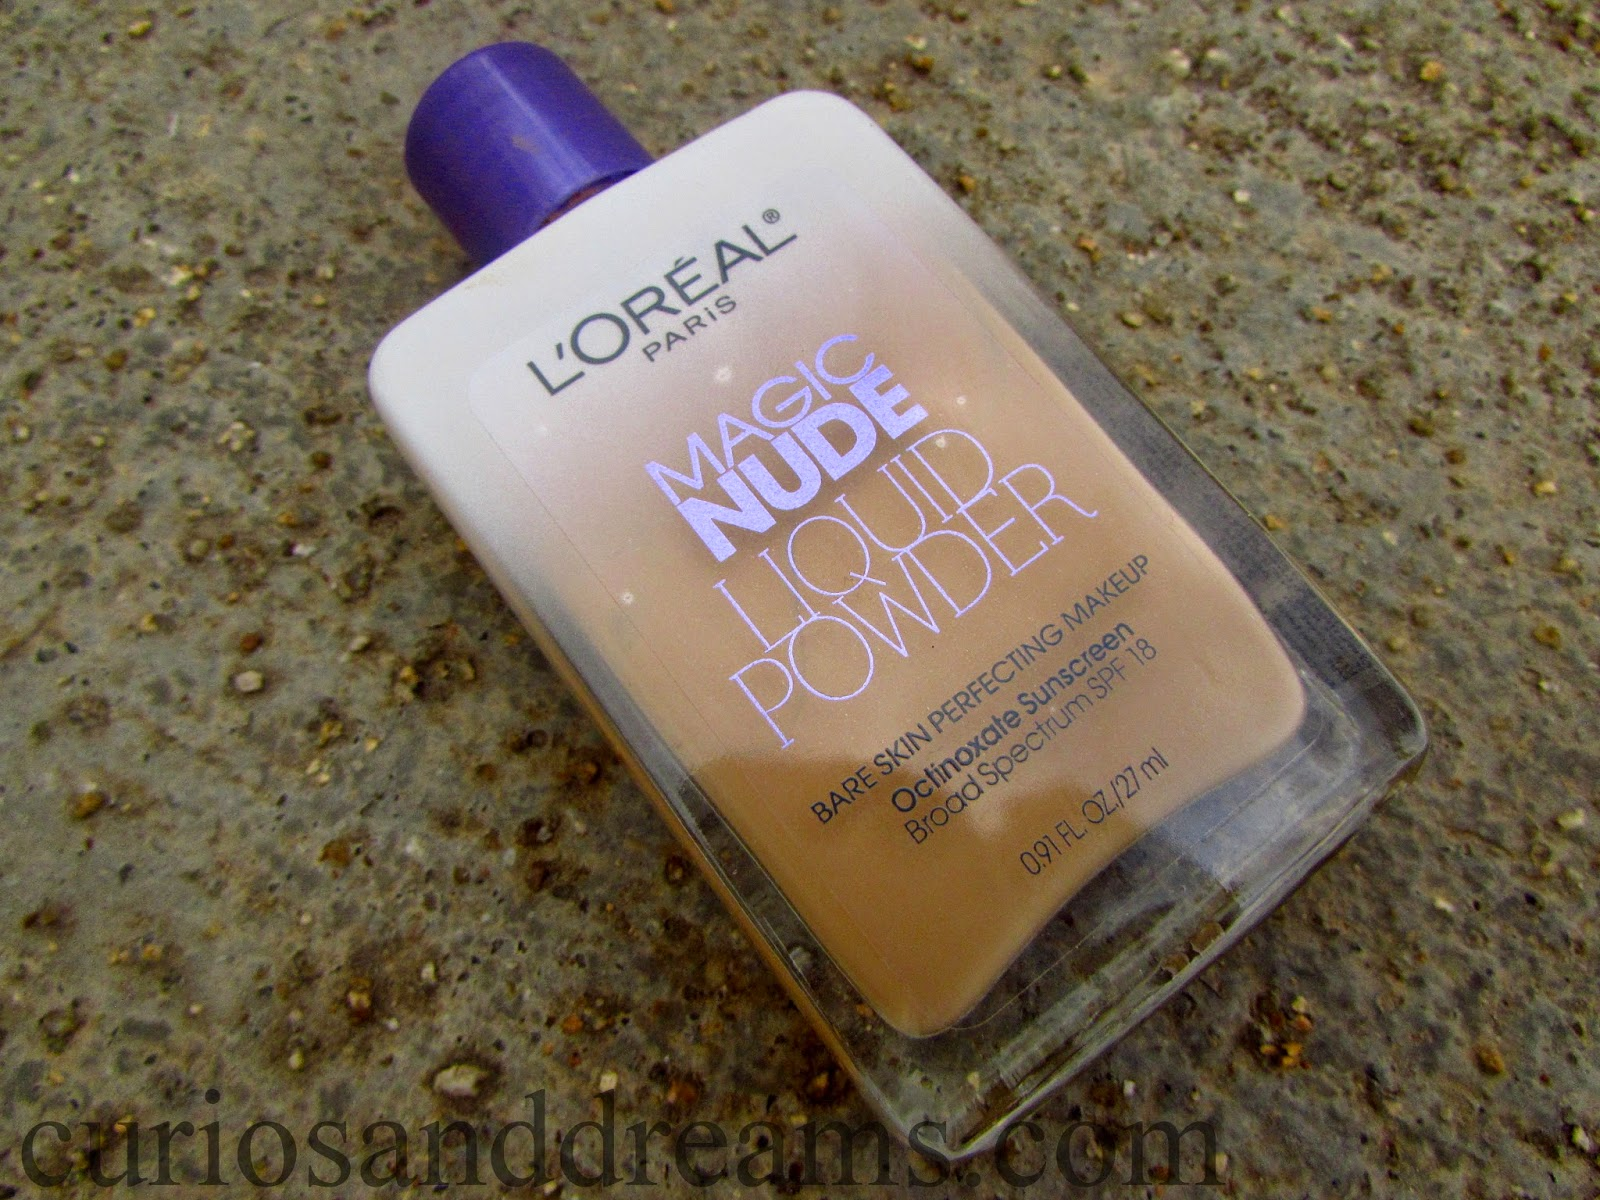 L'Oreal Paris Magic Nude Liquid Powder review, L'Oreal Paris Magic Nude Liquid Powder foundation review